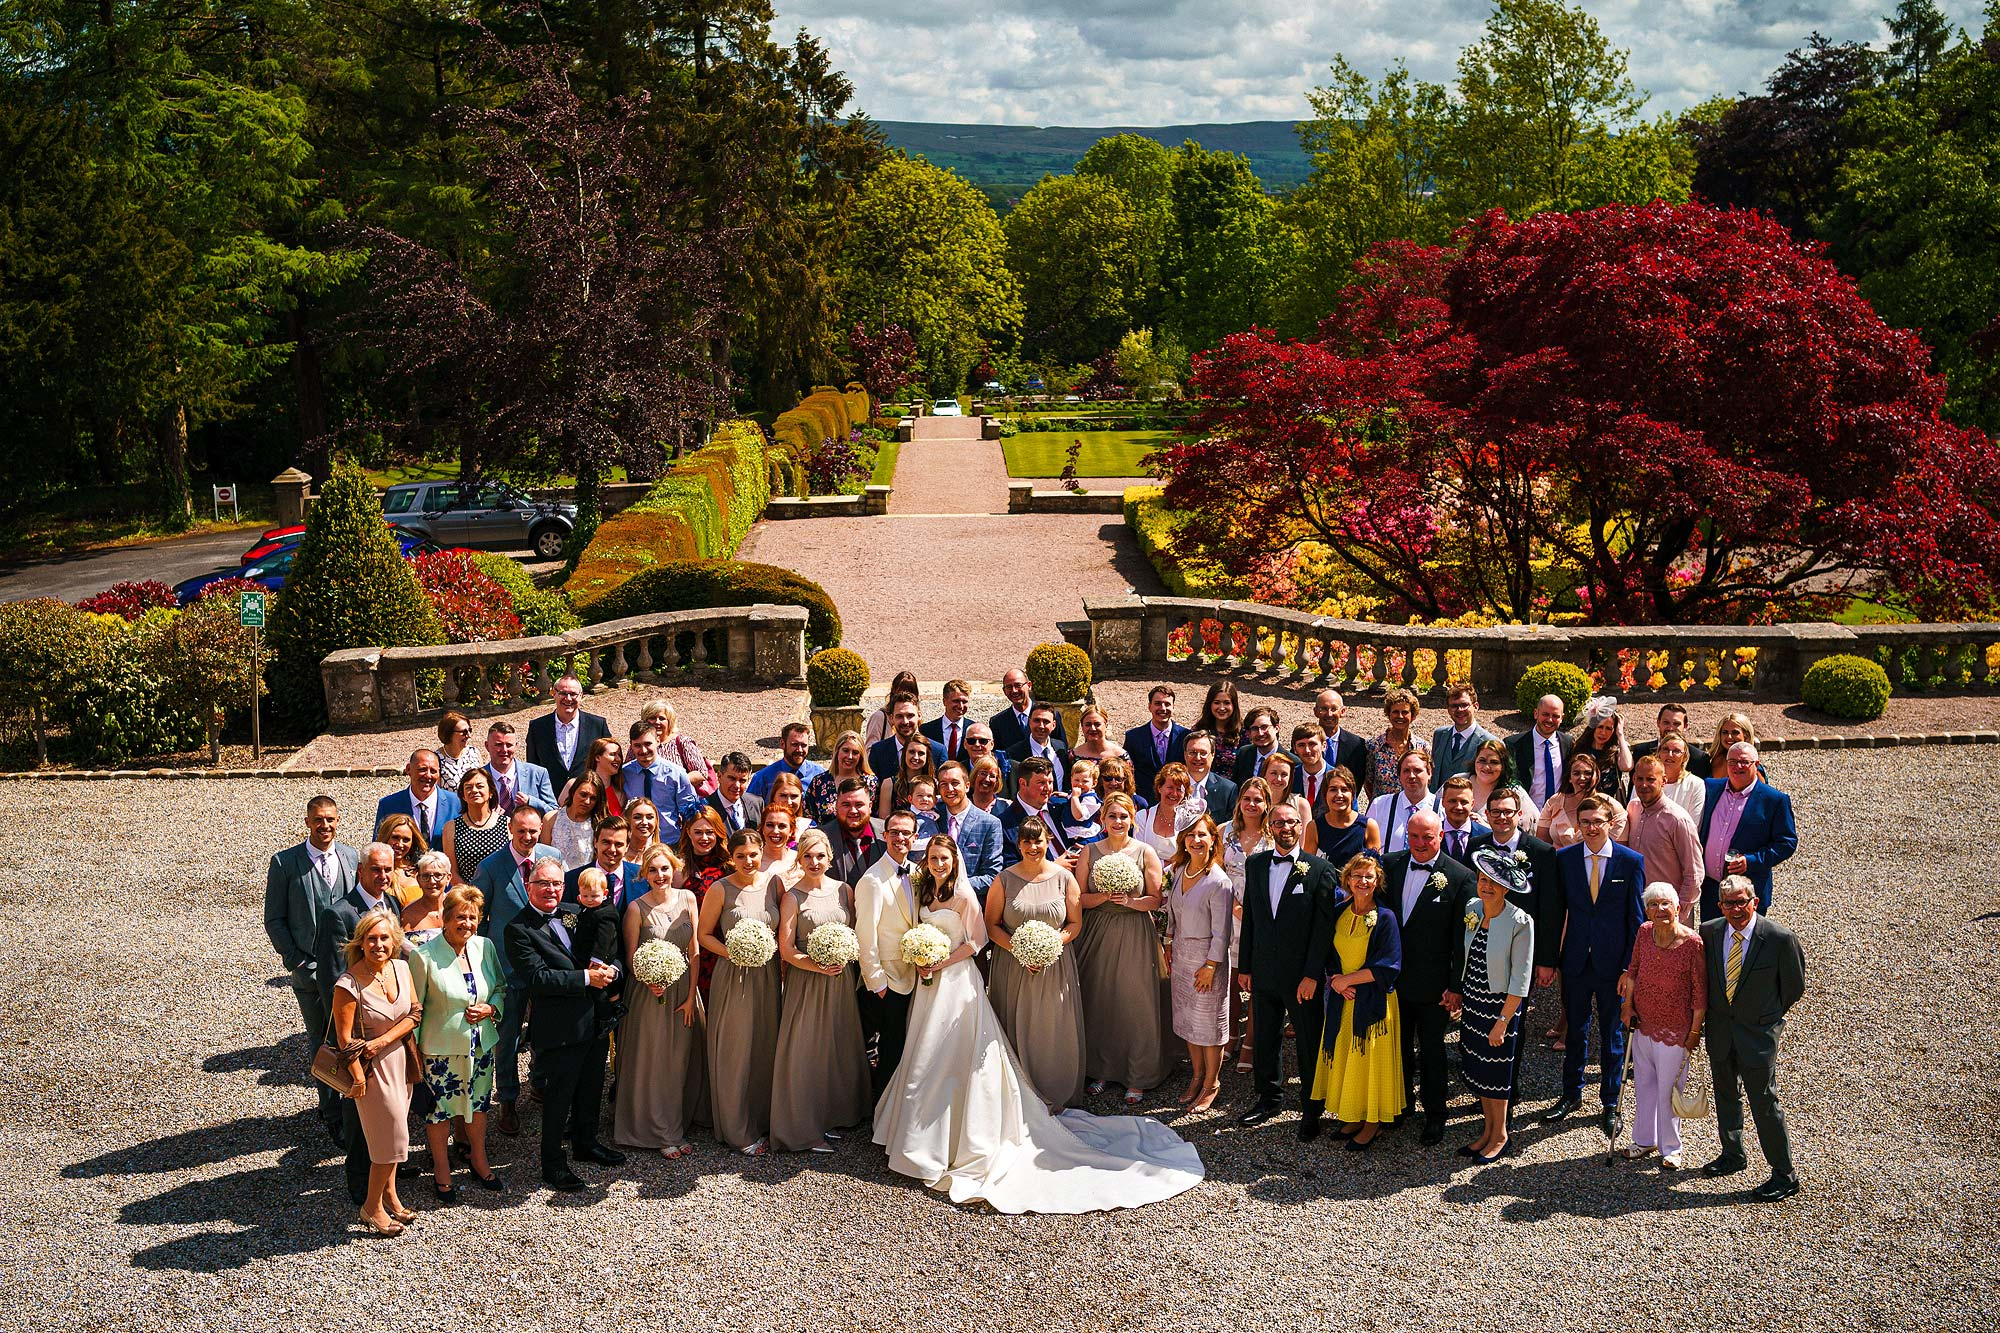 large group photograph of all wedding guests